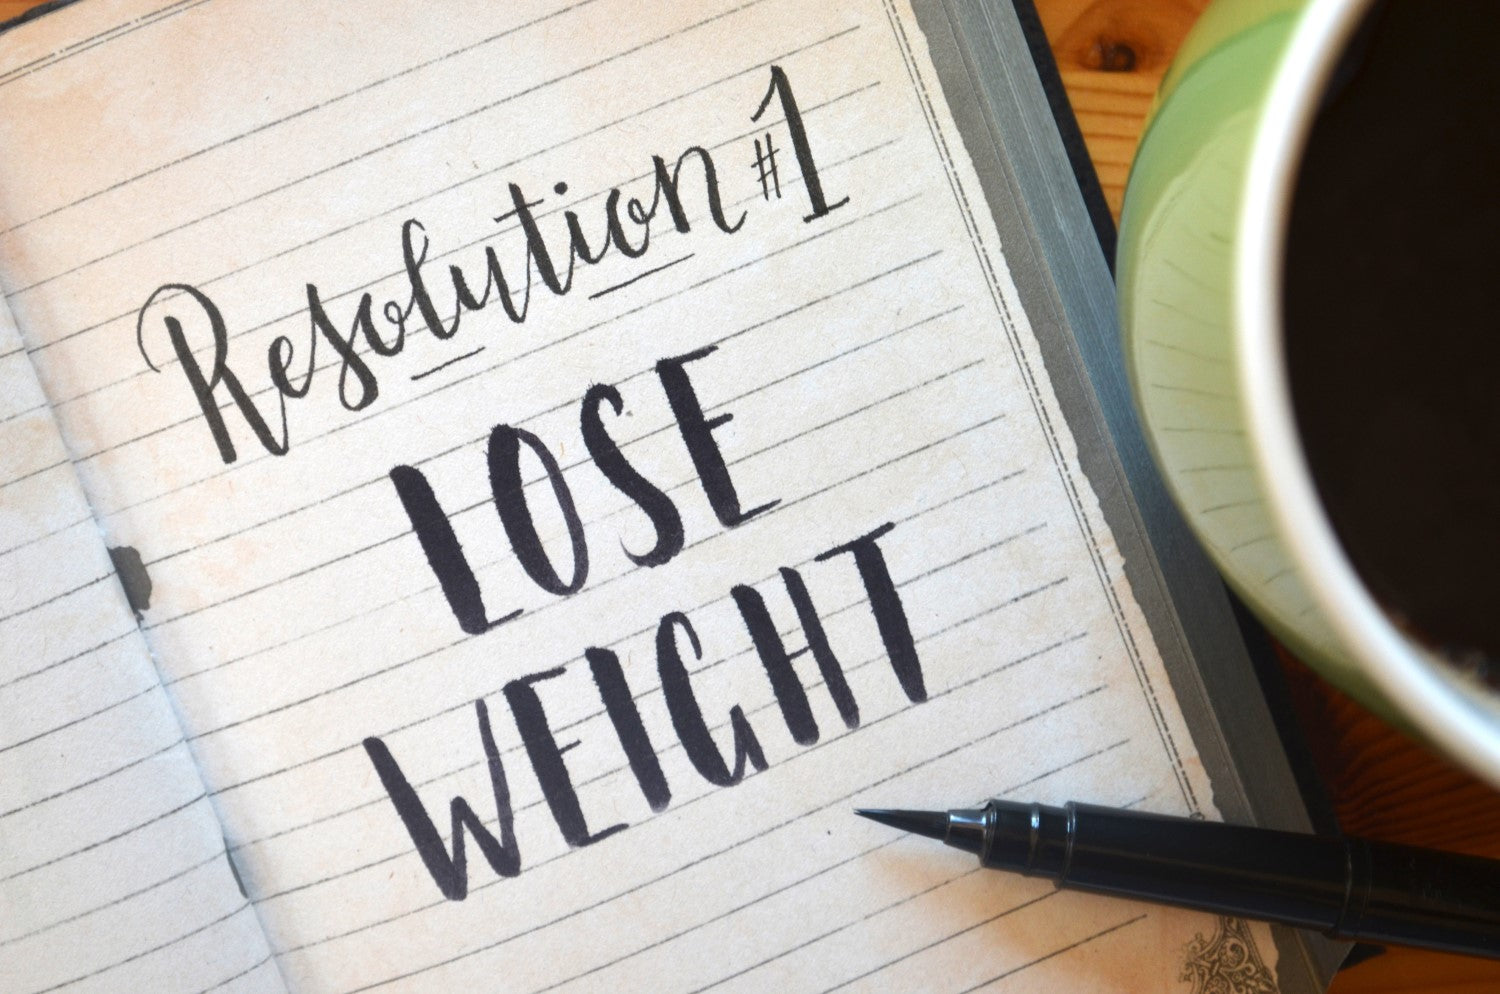 resolution #1 lose weight